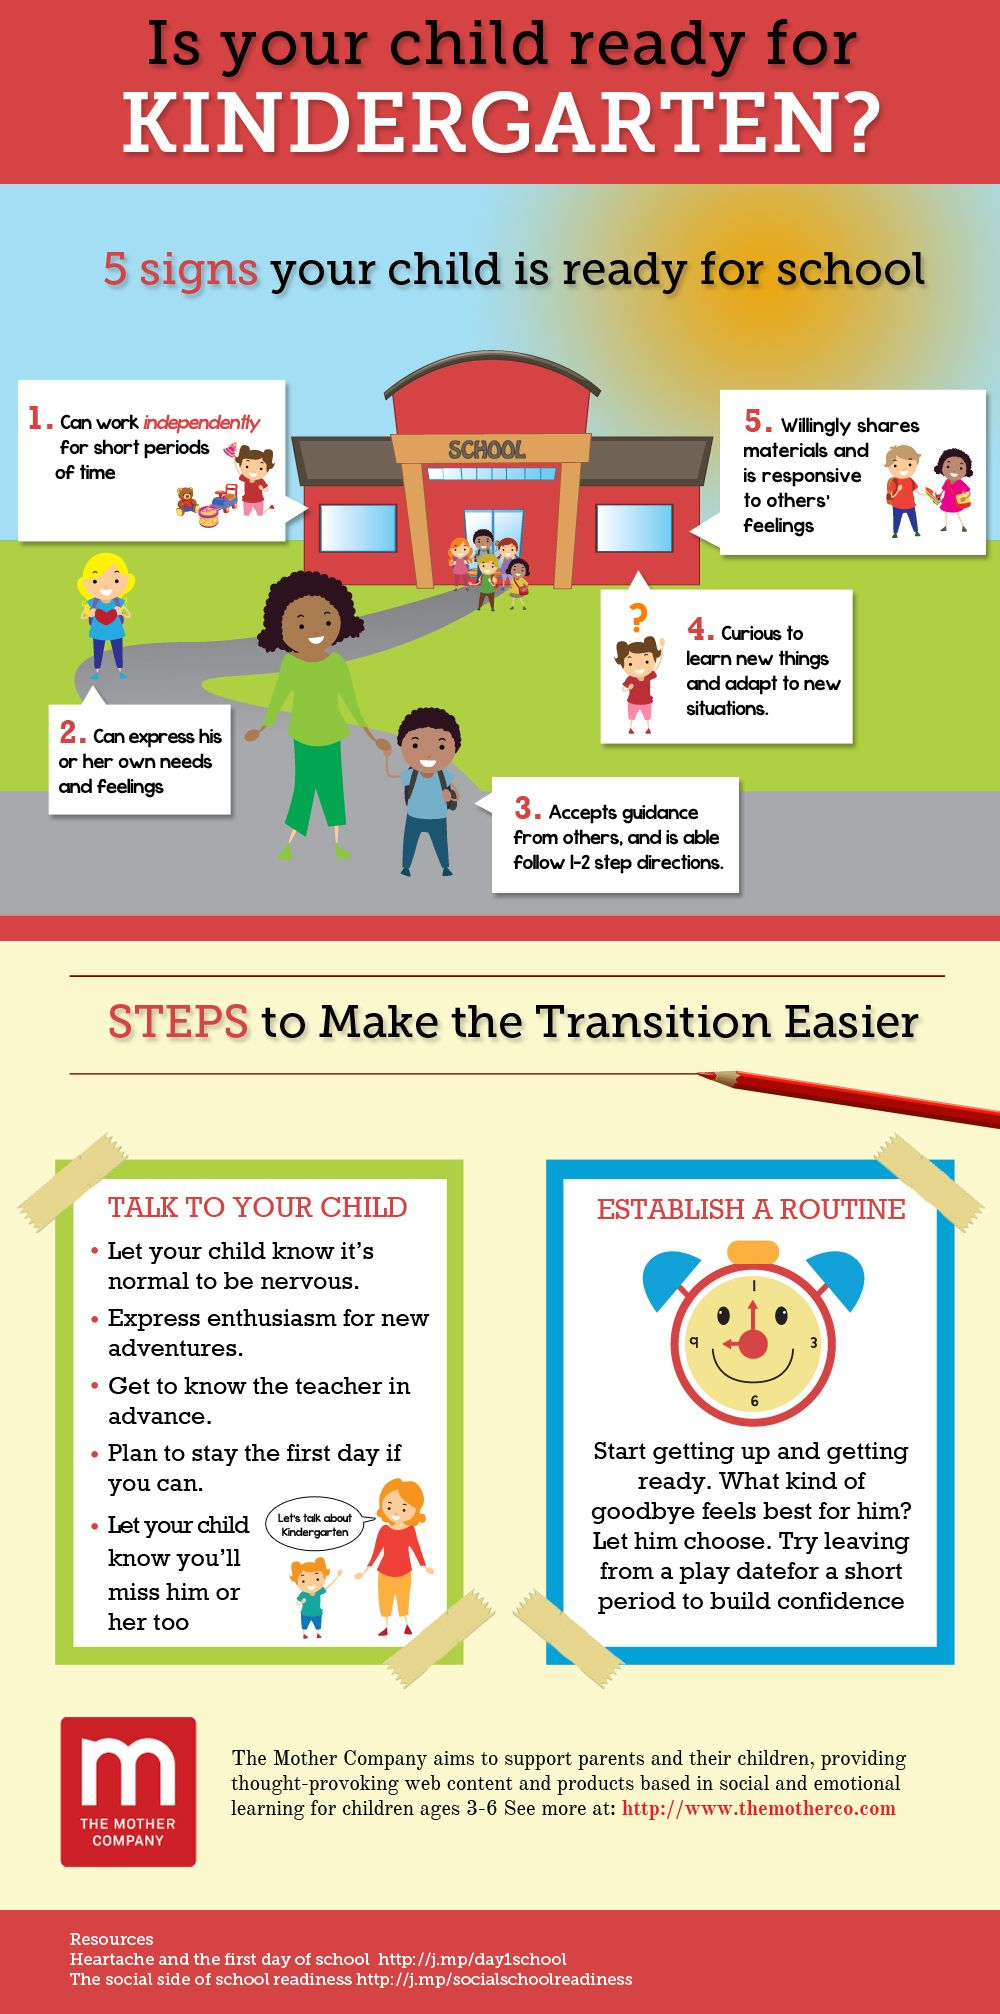 Is Your Child Ready For Kindergarten >> Is Your Child Ready For Kindergarten Infographic Parents